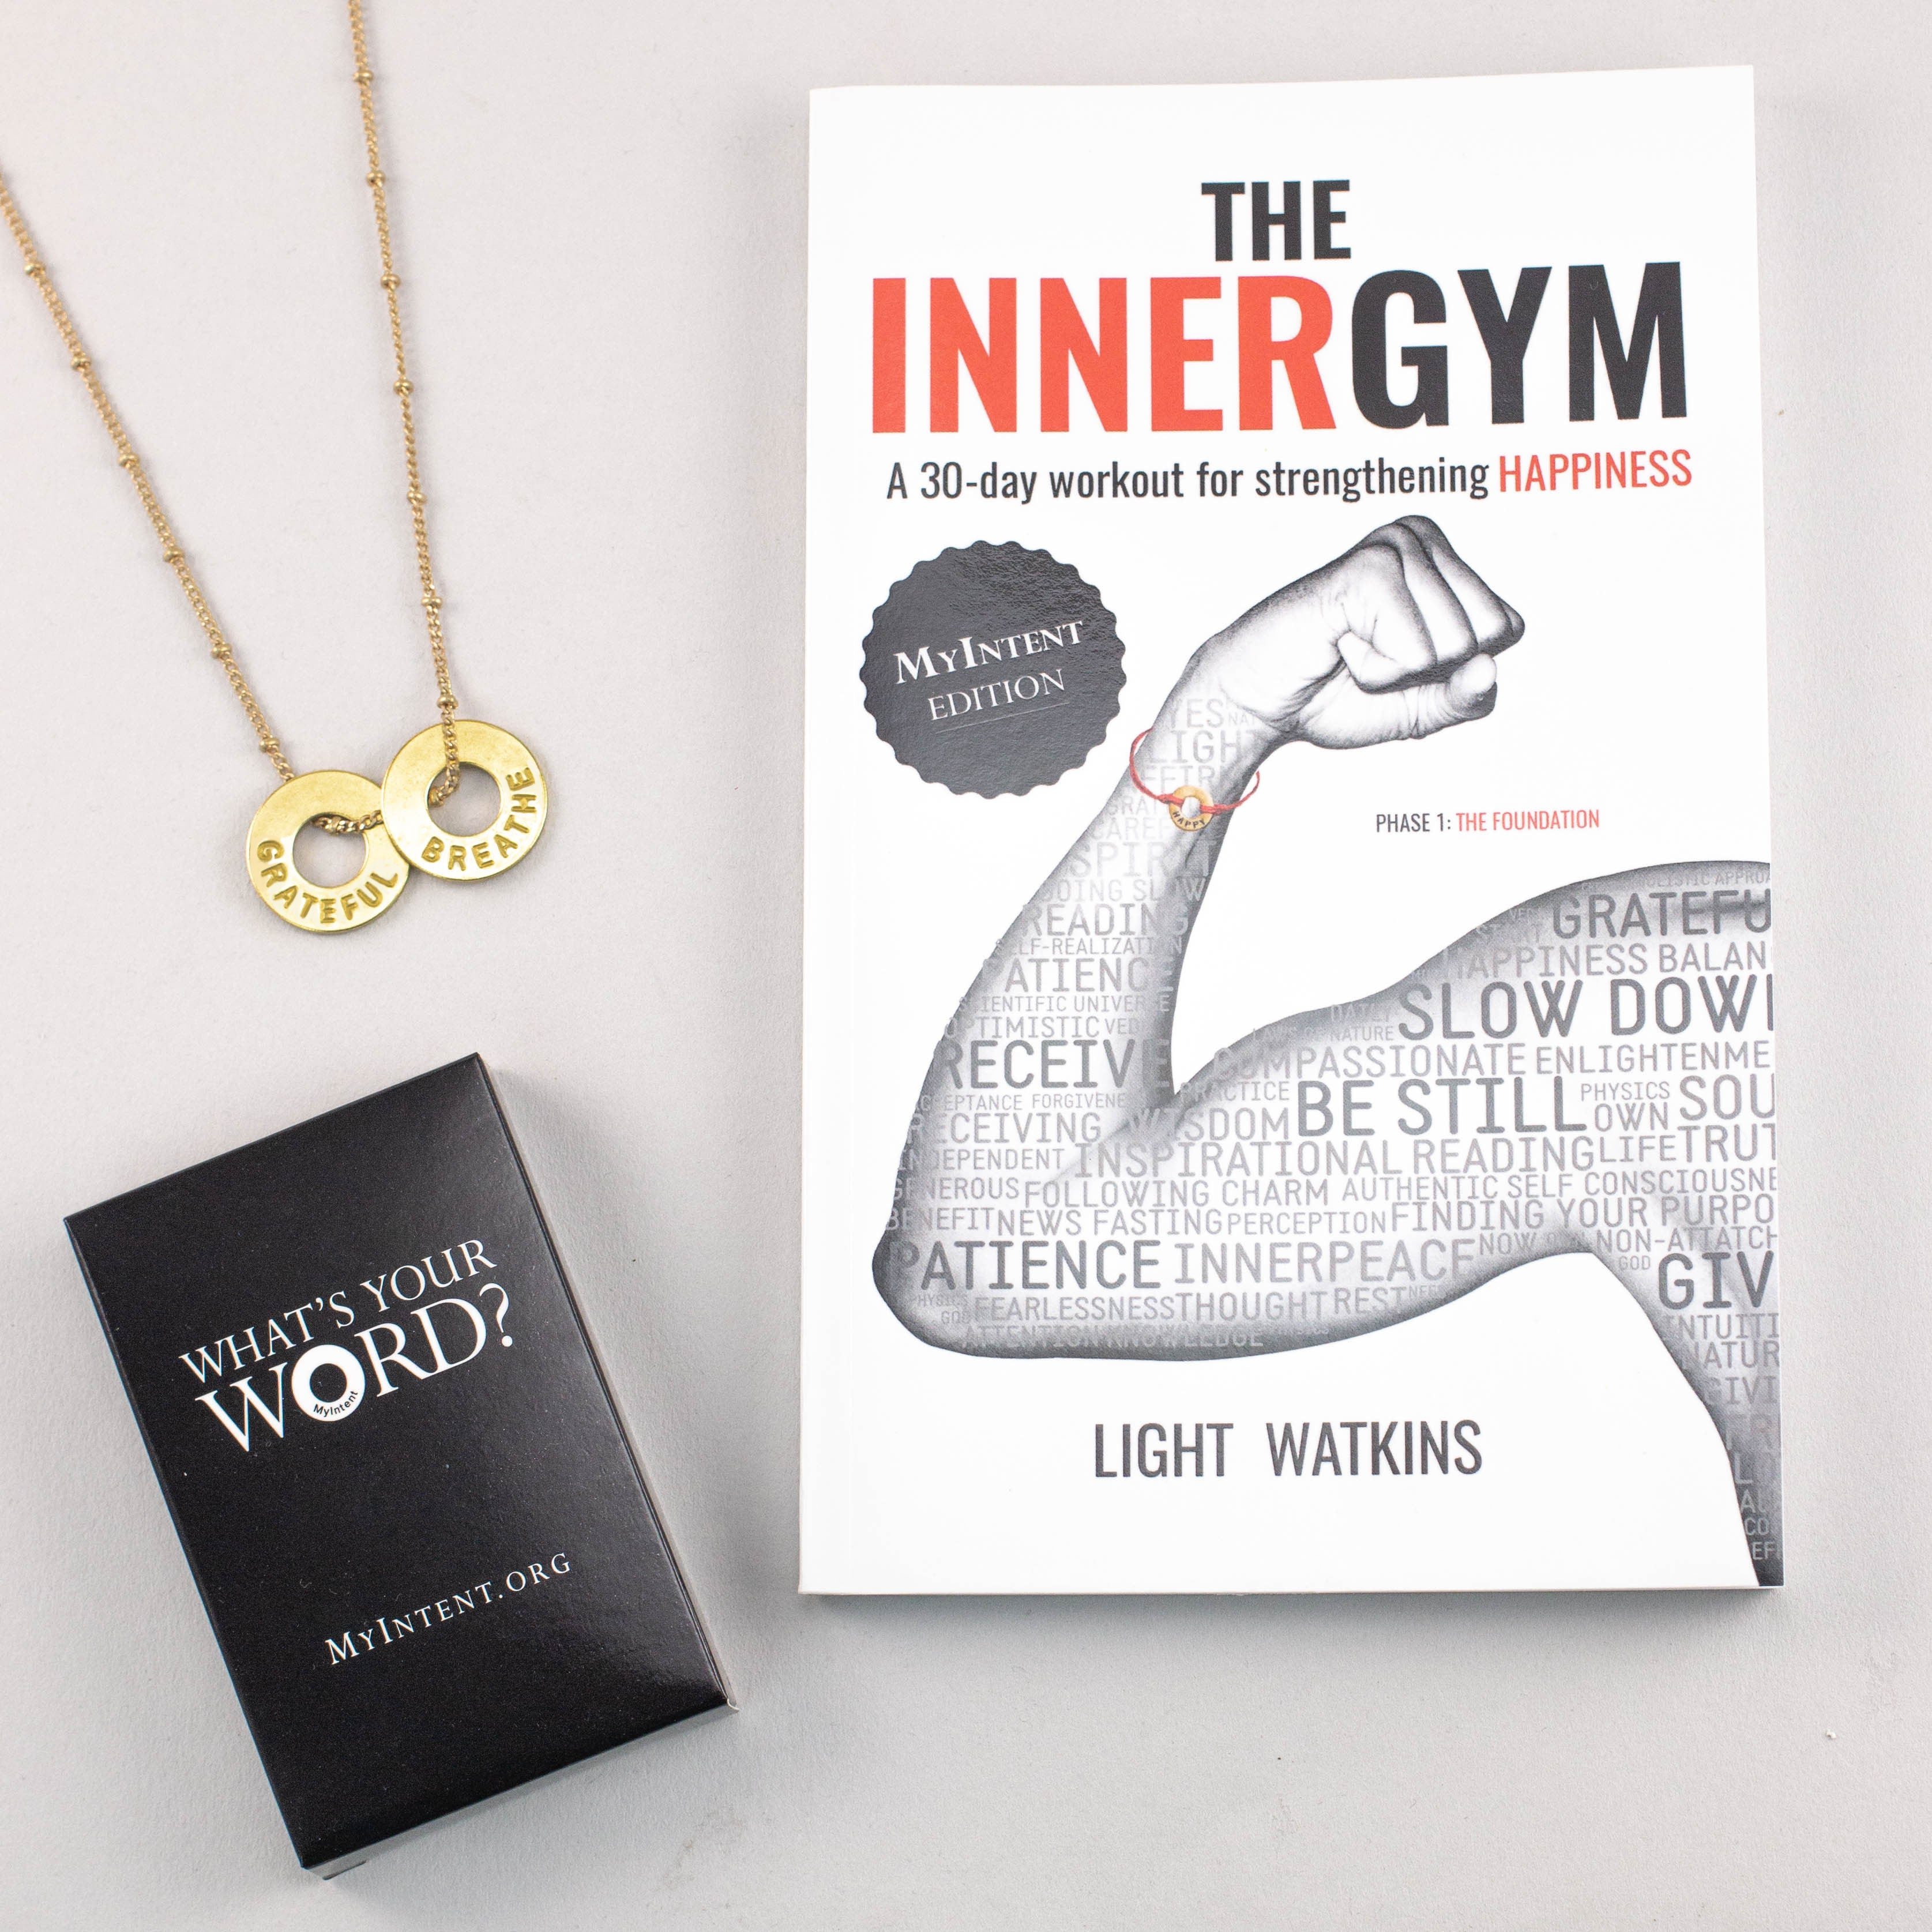 MyIntent Gratitude Pack includes Inner Gym book, 33 question cards, & either a necklace or bracelet